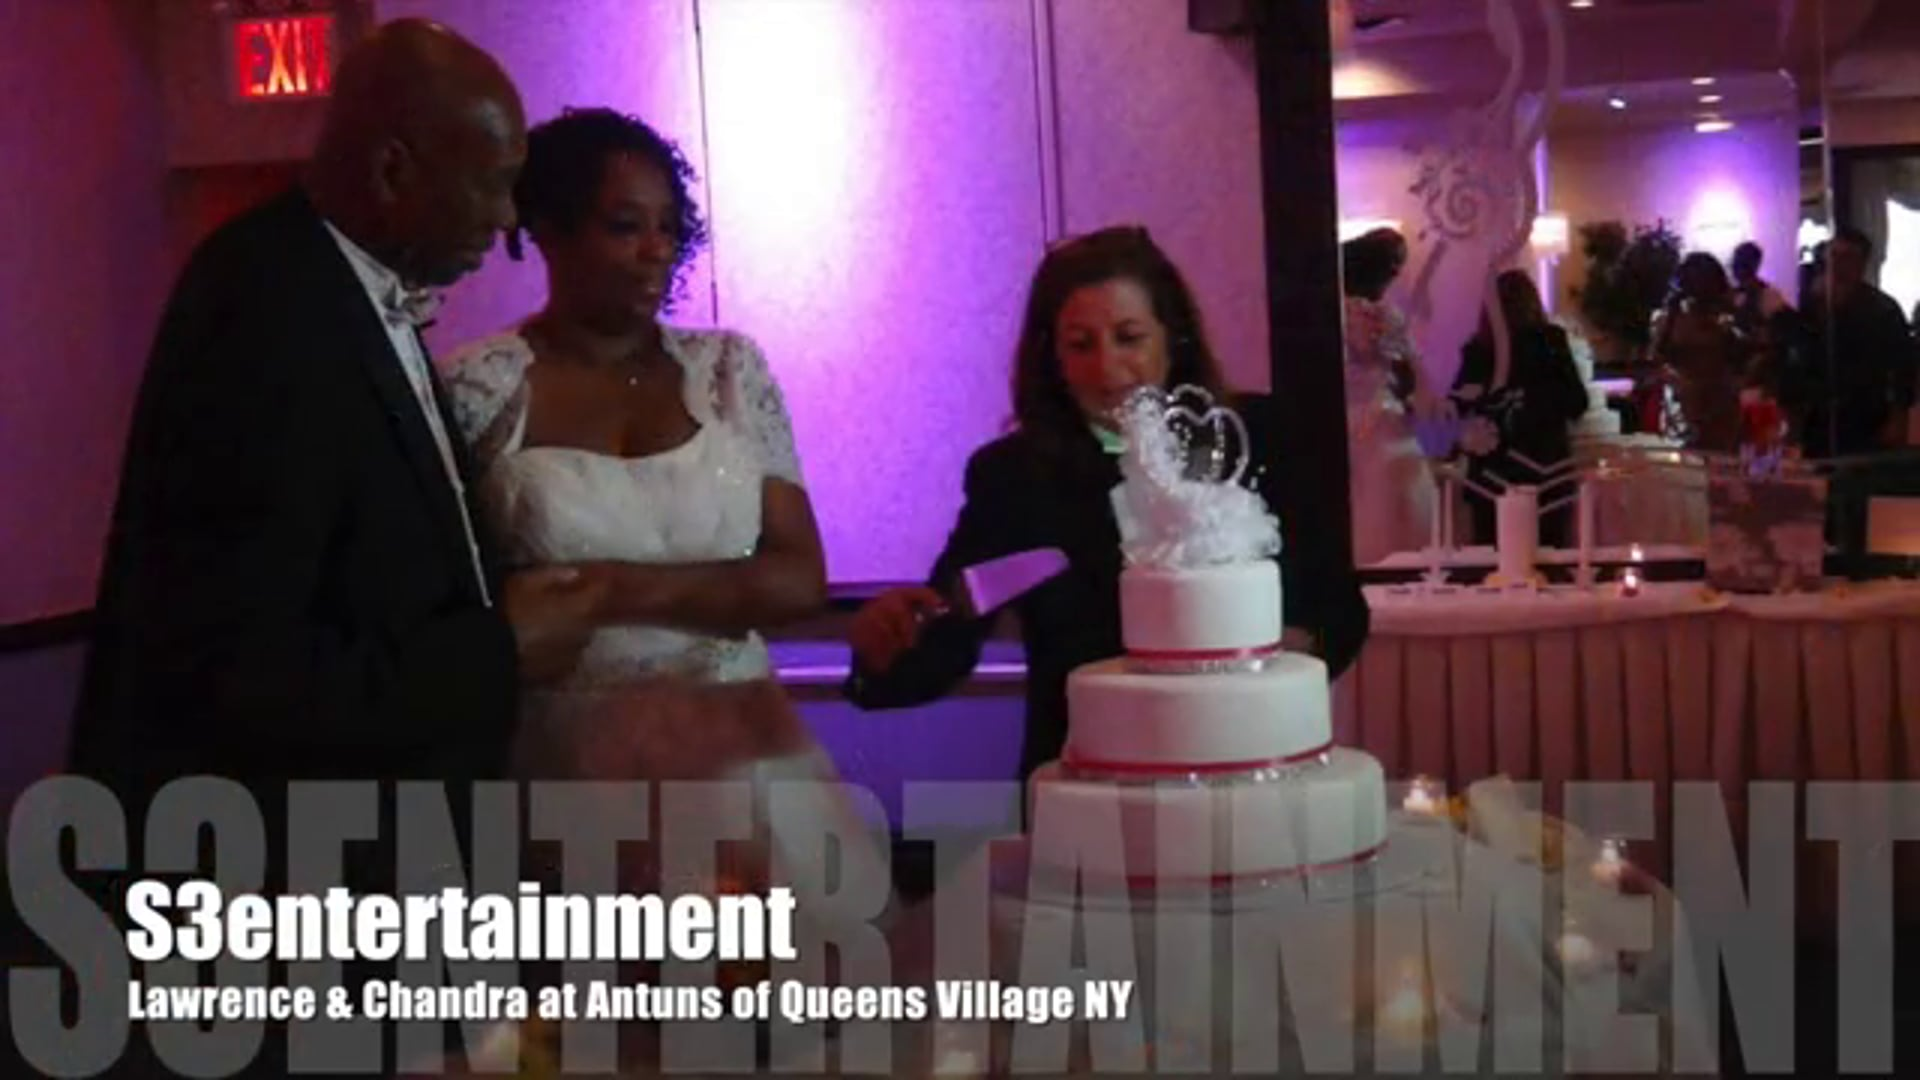 Lawrence & Chandra Wedding Reception @Antuns of Queens NY - October 11, 2014